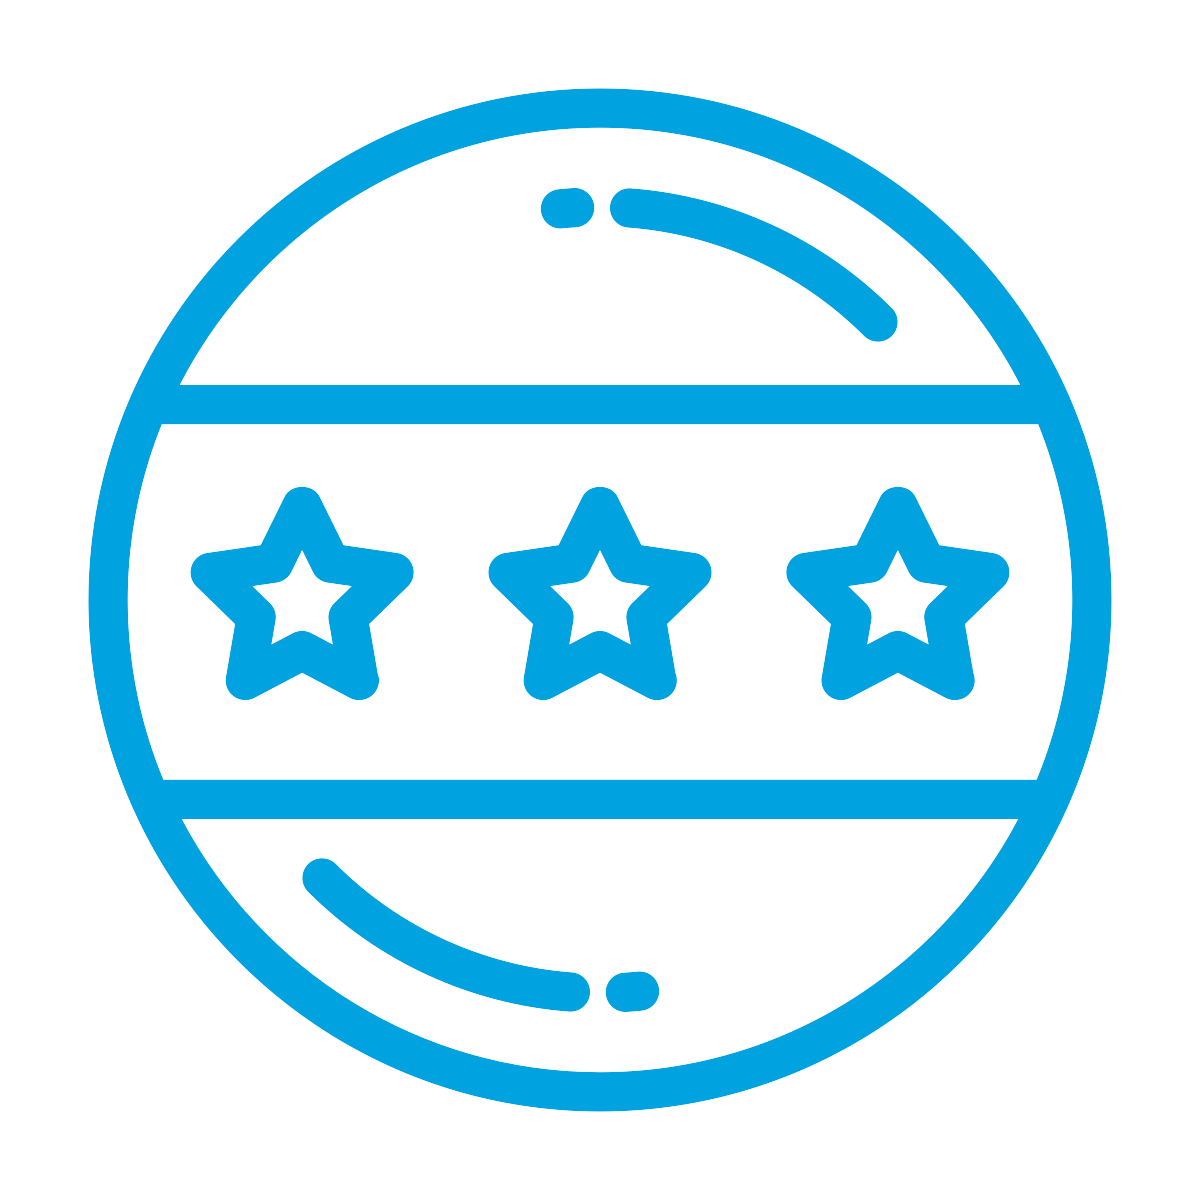 Circular Pin Back Button Decorated with Three Stars